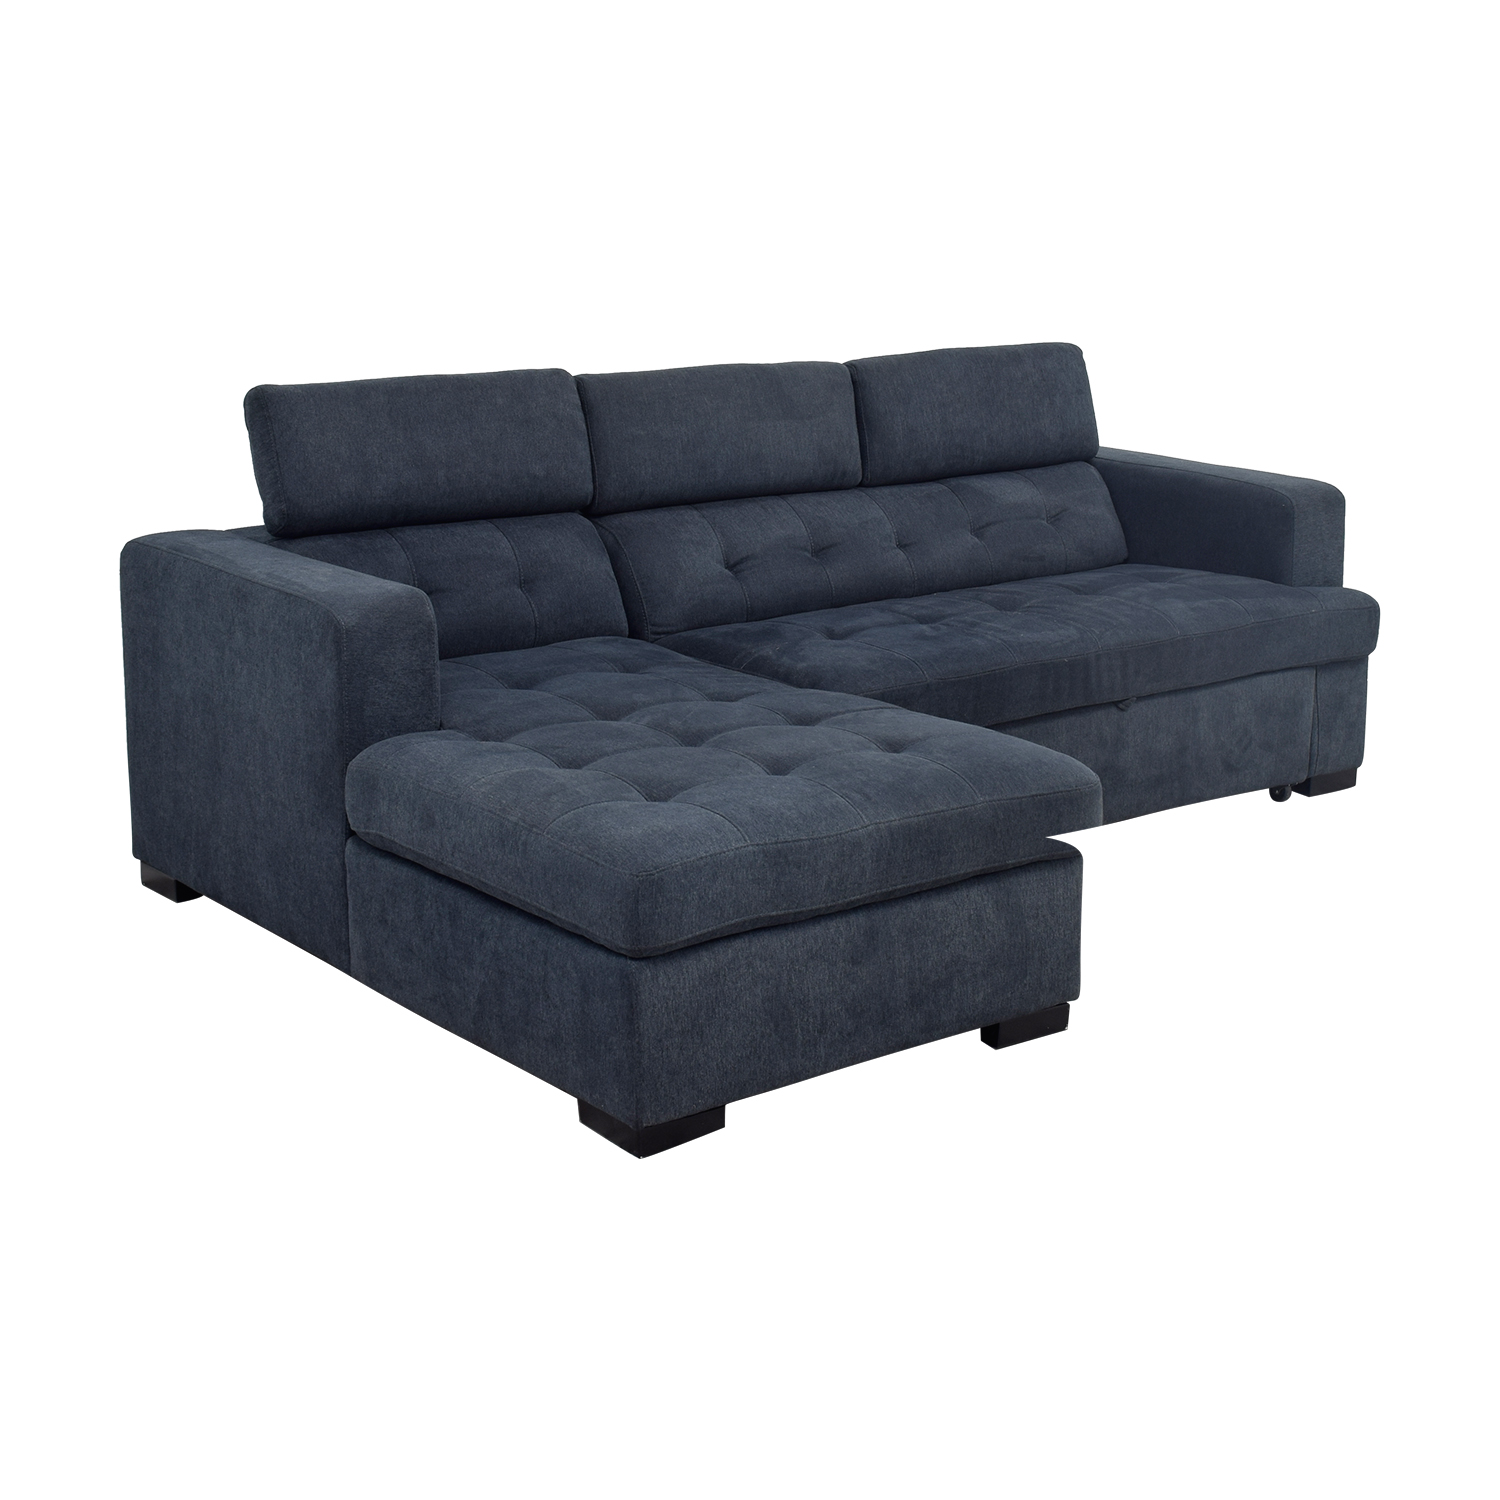 Playpen Playpen Navy Tufted Chaise Sectional on sale